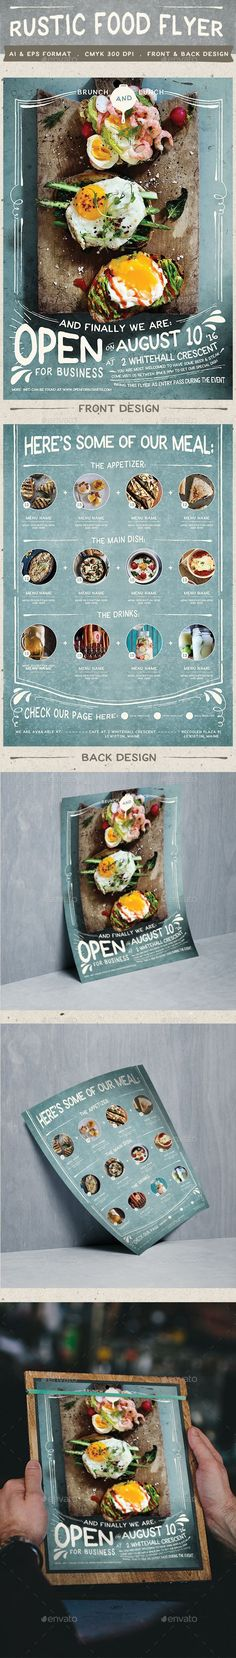 Buy Rustic Food Promo Flyer by KlapauciusCo on GraphicRiver. Draw more customers to your business by spreading words about it using this rustic food promo flyer that's very easy . Carta Restaurant, Restaurant Poster, Restaurant Menu Design, Restaurant Branding, Resturant Menu, Rustic Restaurant, Restaurant Food, Web Design, Cafe Design